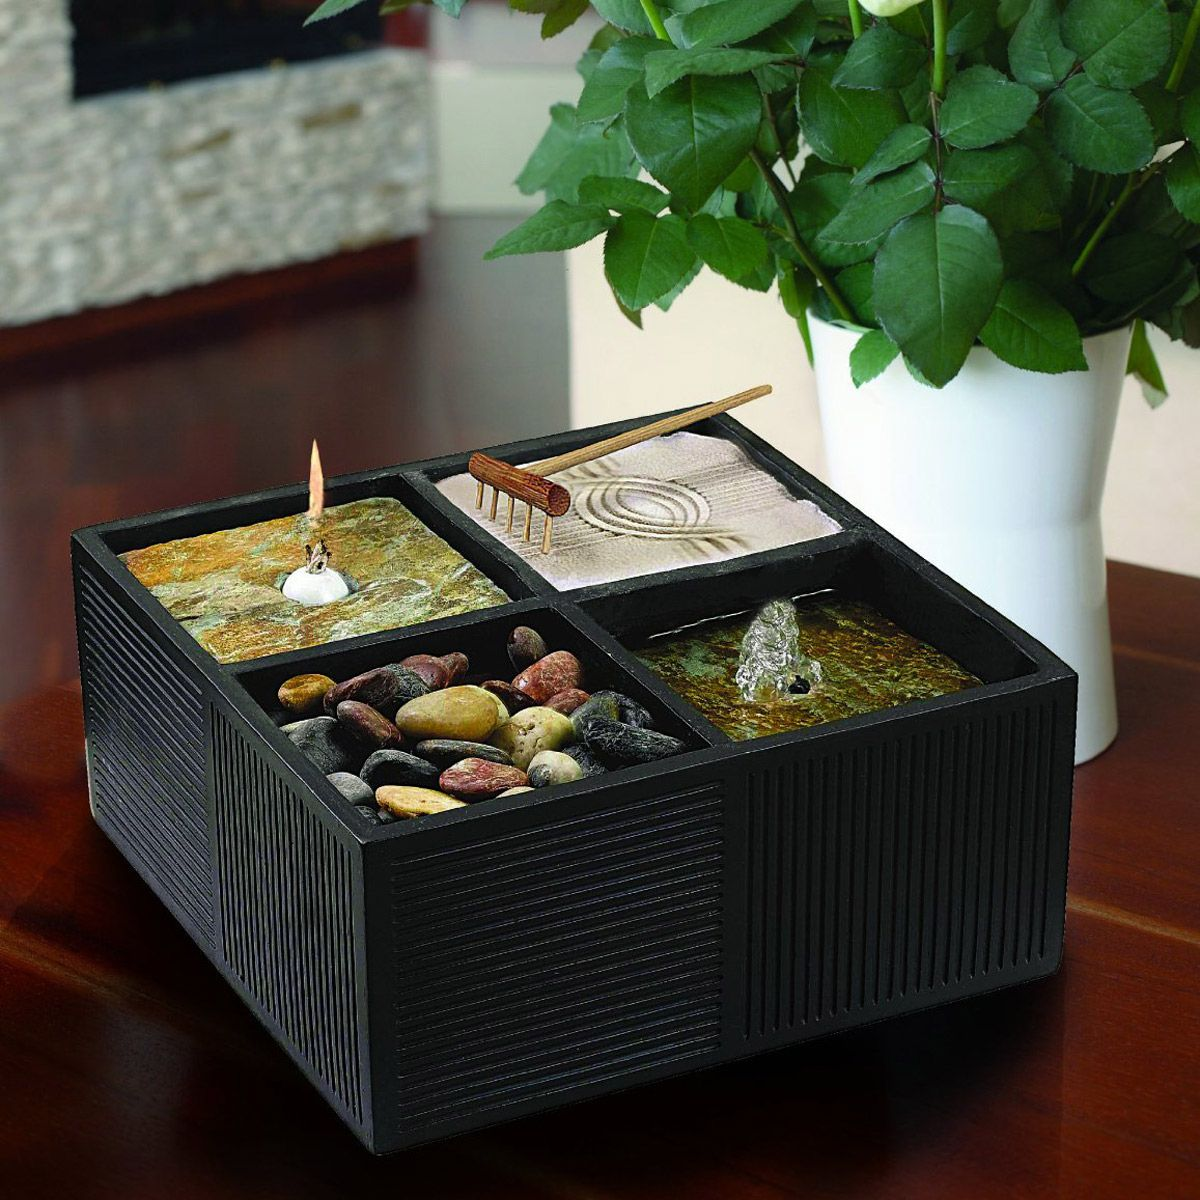 This Compact All In One Zen Garden Combines A Small Fountain, A Rock Garden,  A White Sand Garden With A Rake, And An Oil Candle Contained Inside A  Simple ...